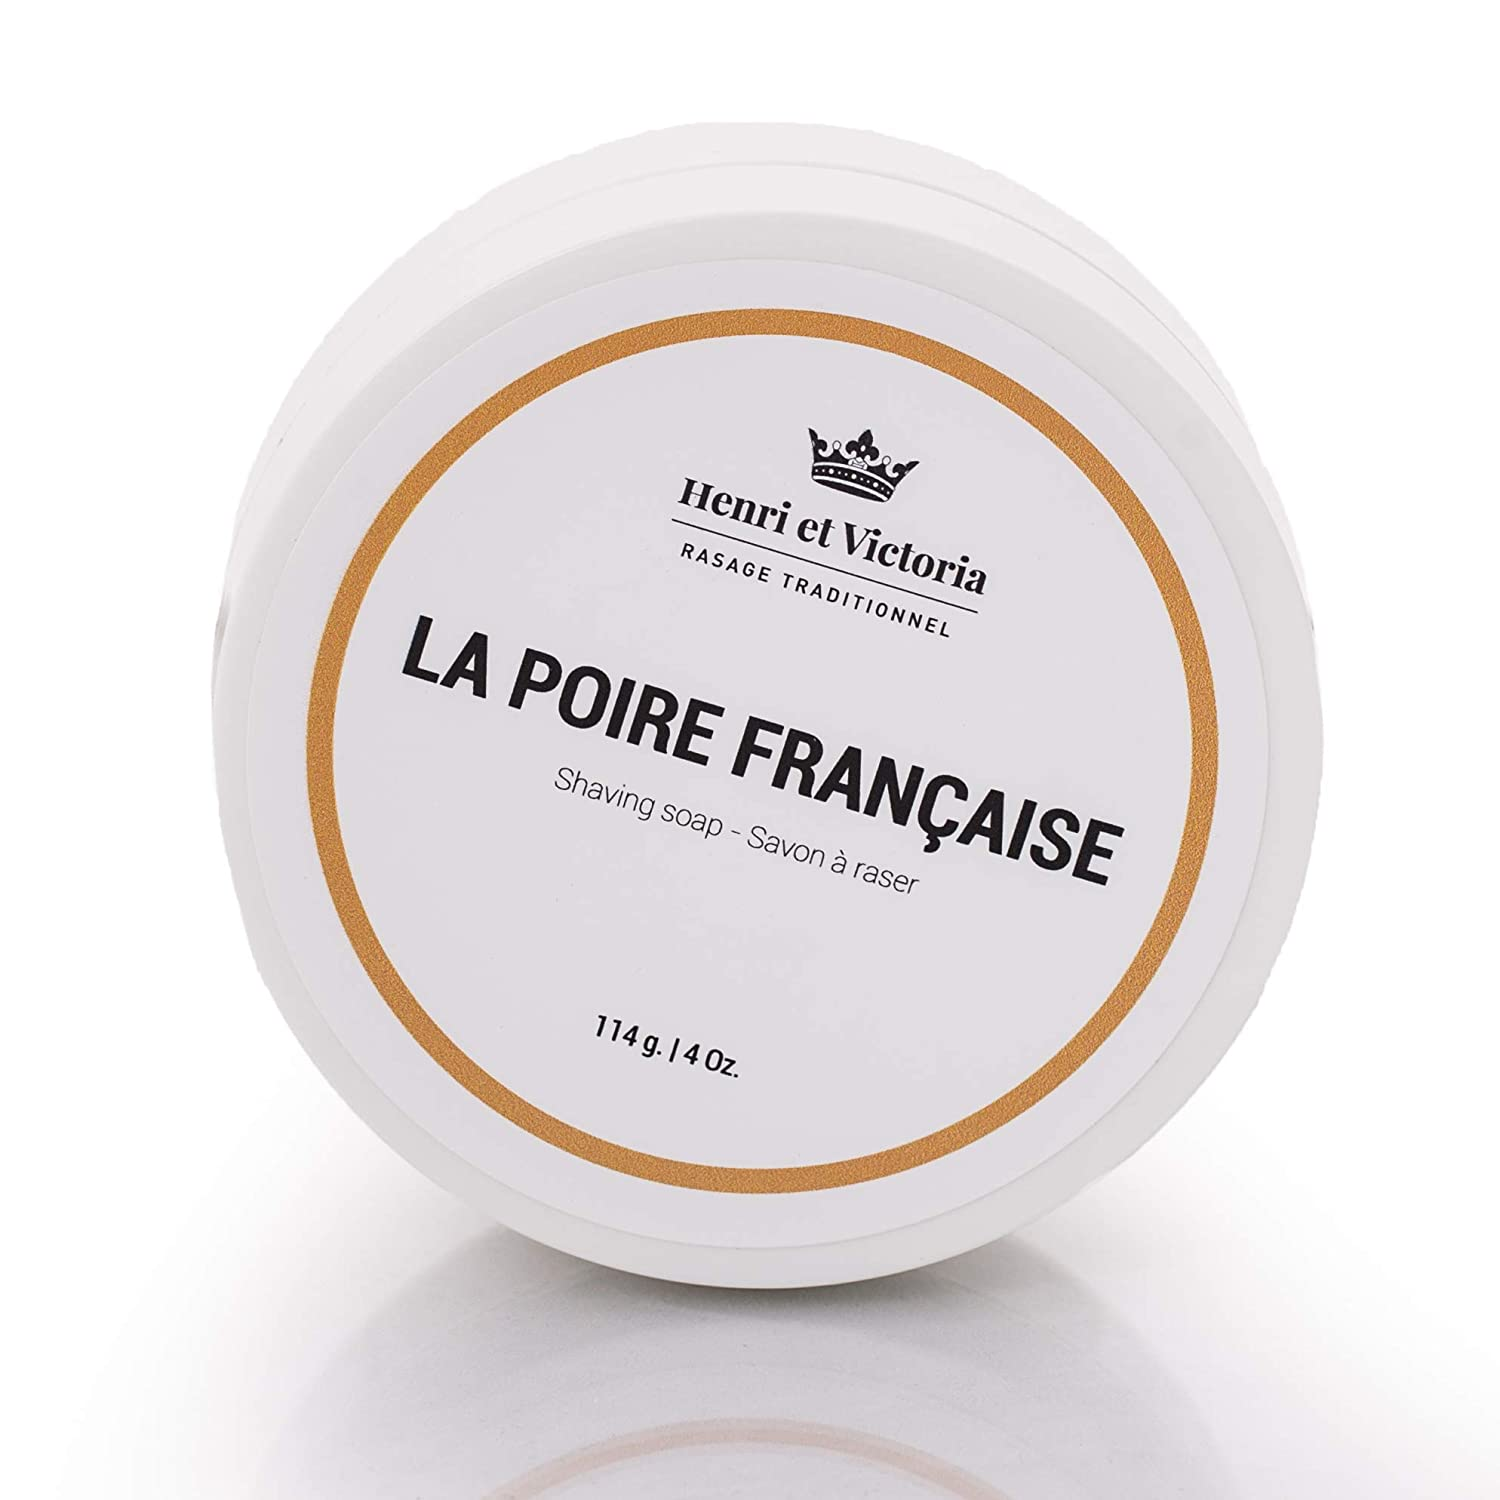 Henri et Victoria Shaving Soap For Everyone | La Poire Francaise Shaving Cream Fragrance | Canadian Made by Skilled Artisan |Moisturizing, Ultra Glide, Cushioning, Easy Lather, Prevent Razor Burn and Dry Skin | 114 g (4 oz) Henri et Victoria inc